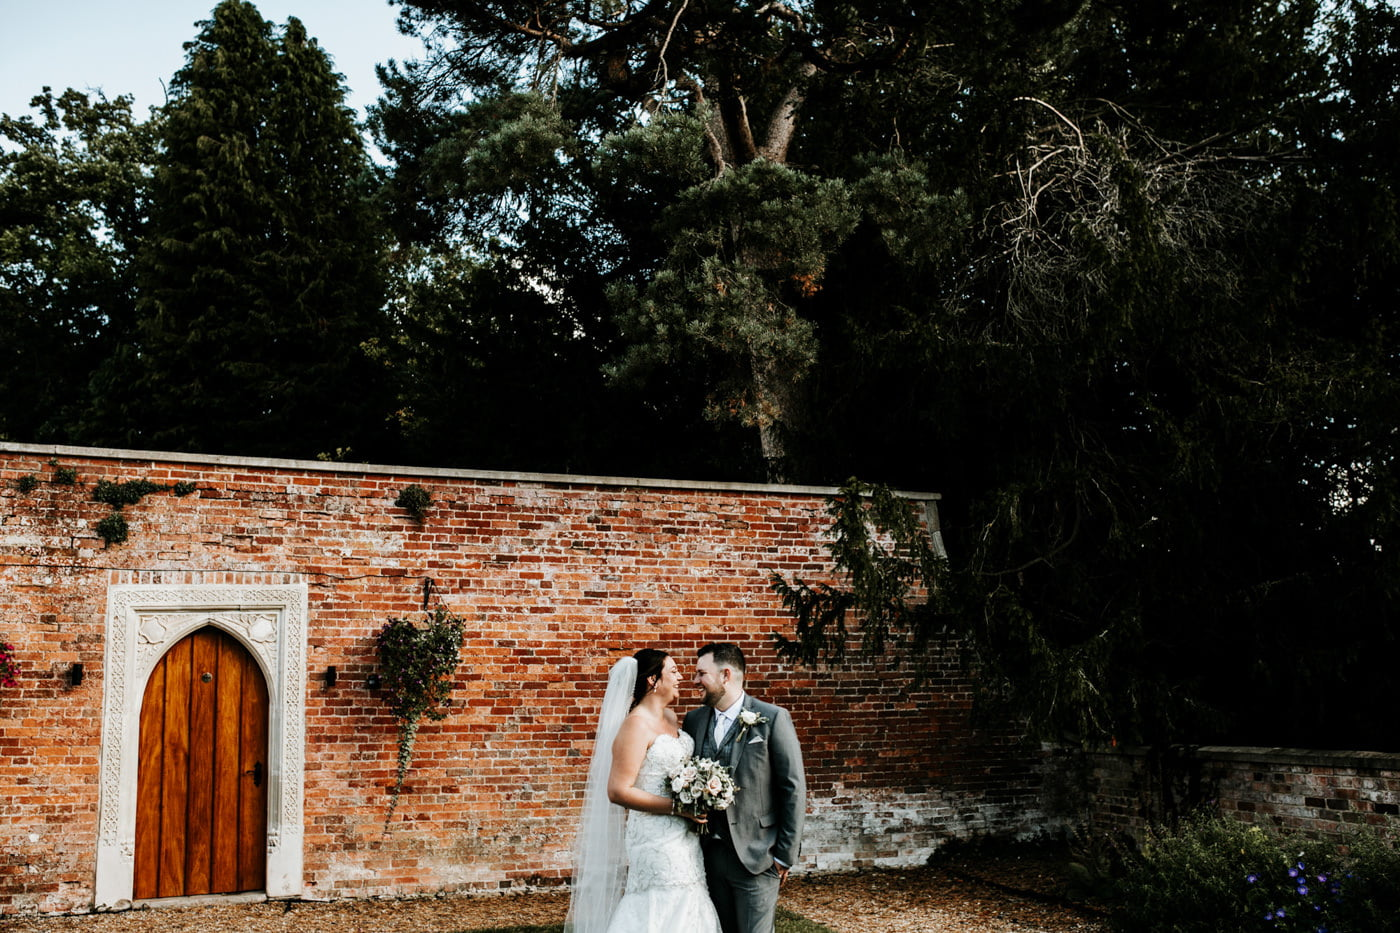 Leanne and Scott / Elmhay Park, Somerset 40